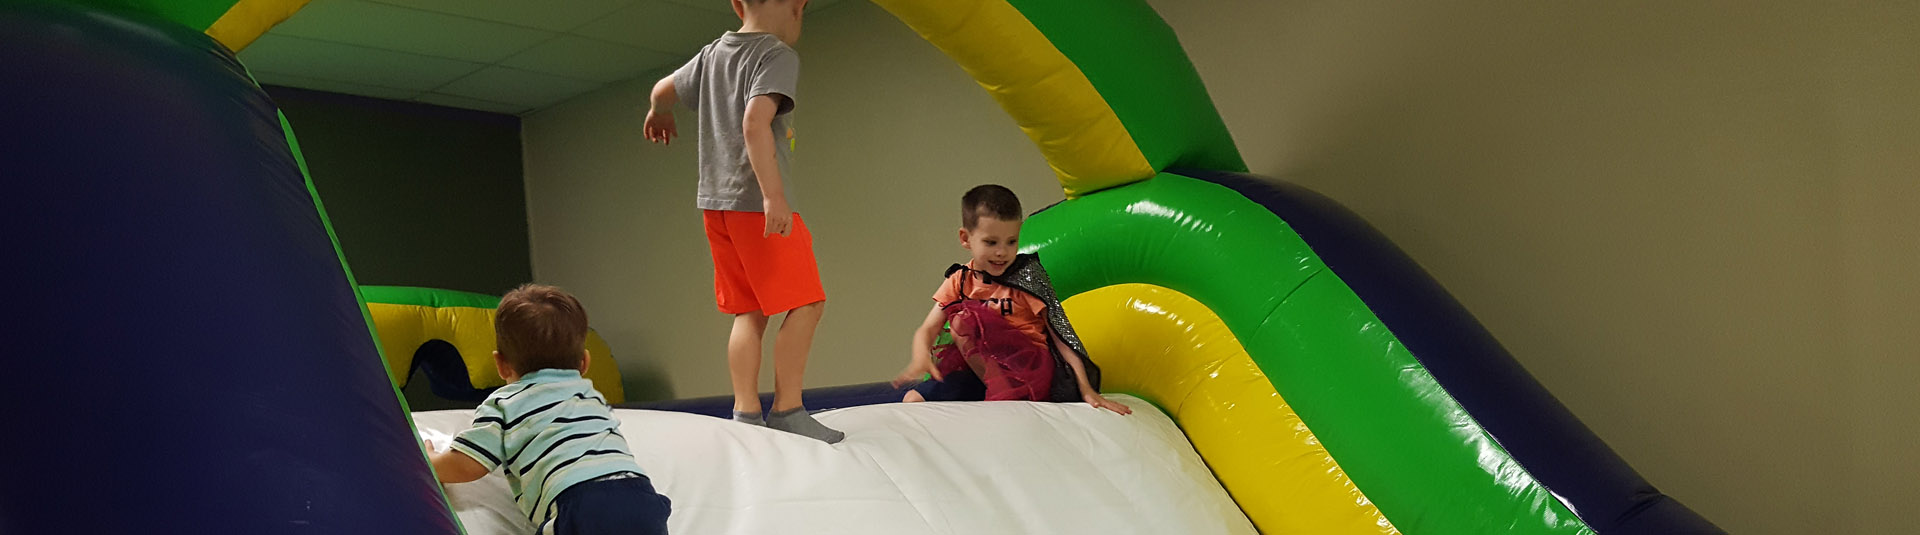 boys playing on indoor bouncy obstacle course | Whiz Kids Play Zone & Party Place - Naples, Florida